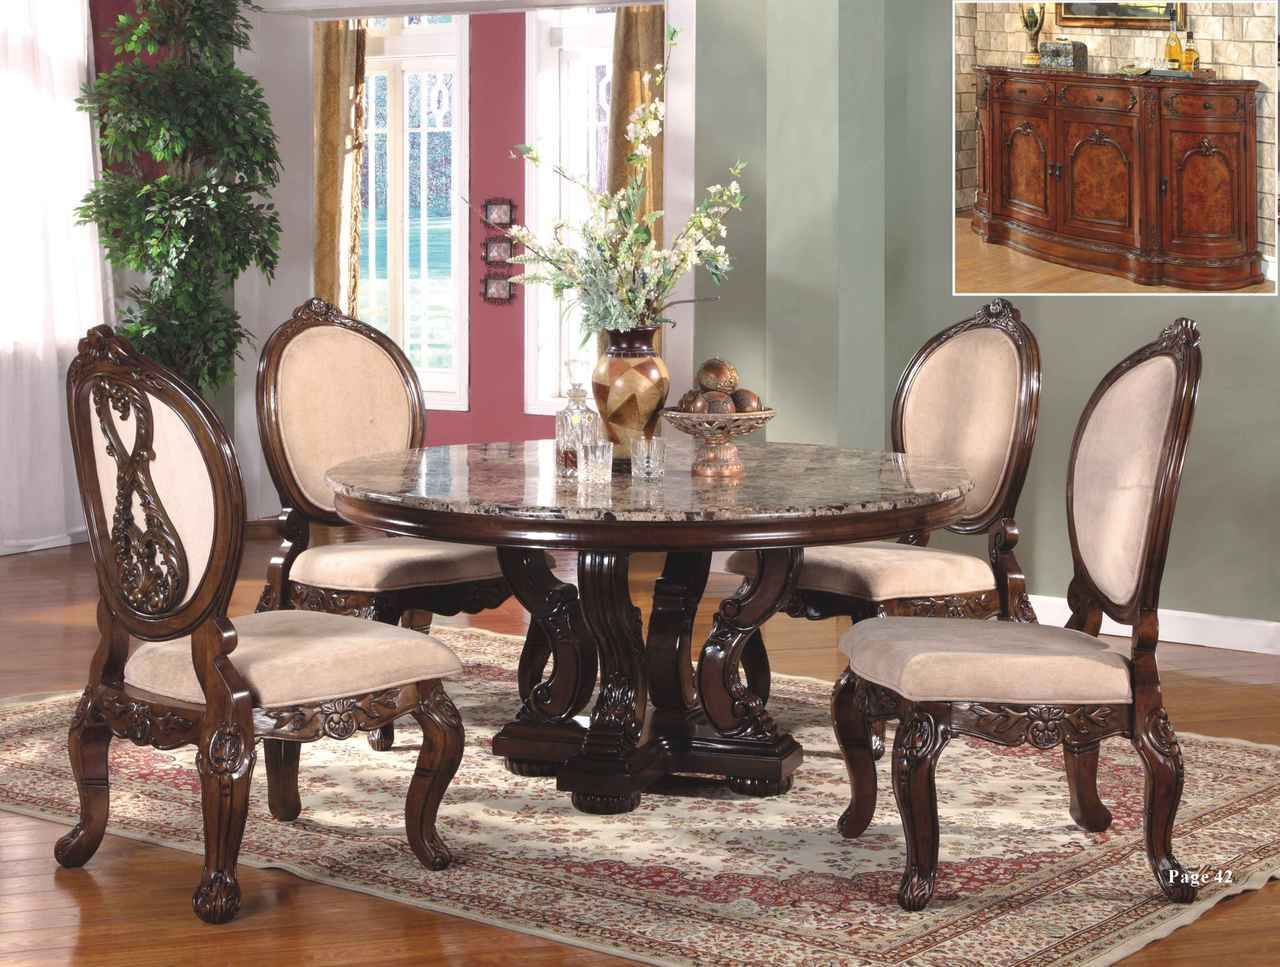 Marbella 95 Antique Brown Cherry 7 Pc Dining Set Country Dining Tables French Country Dining Room Set French Country Dining Room